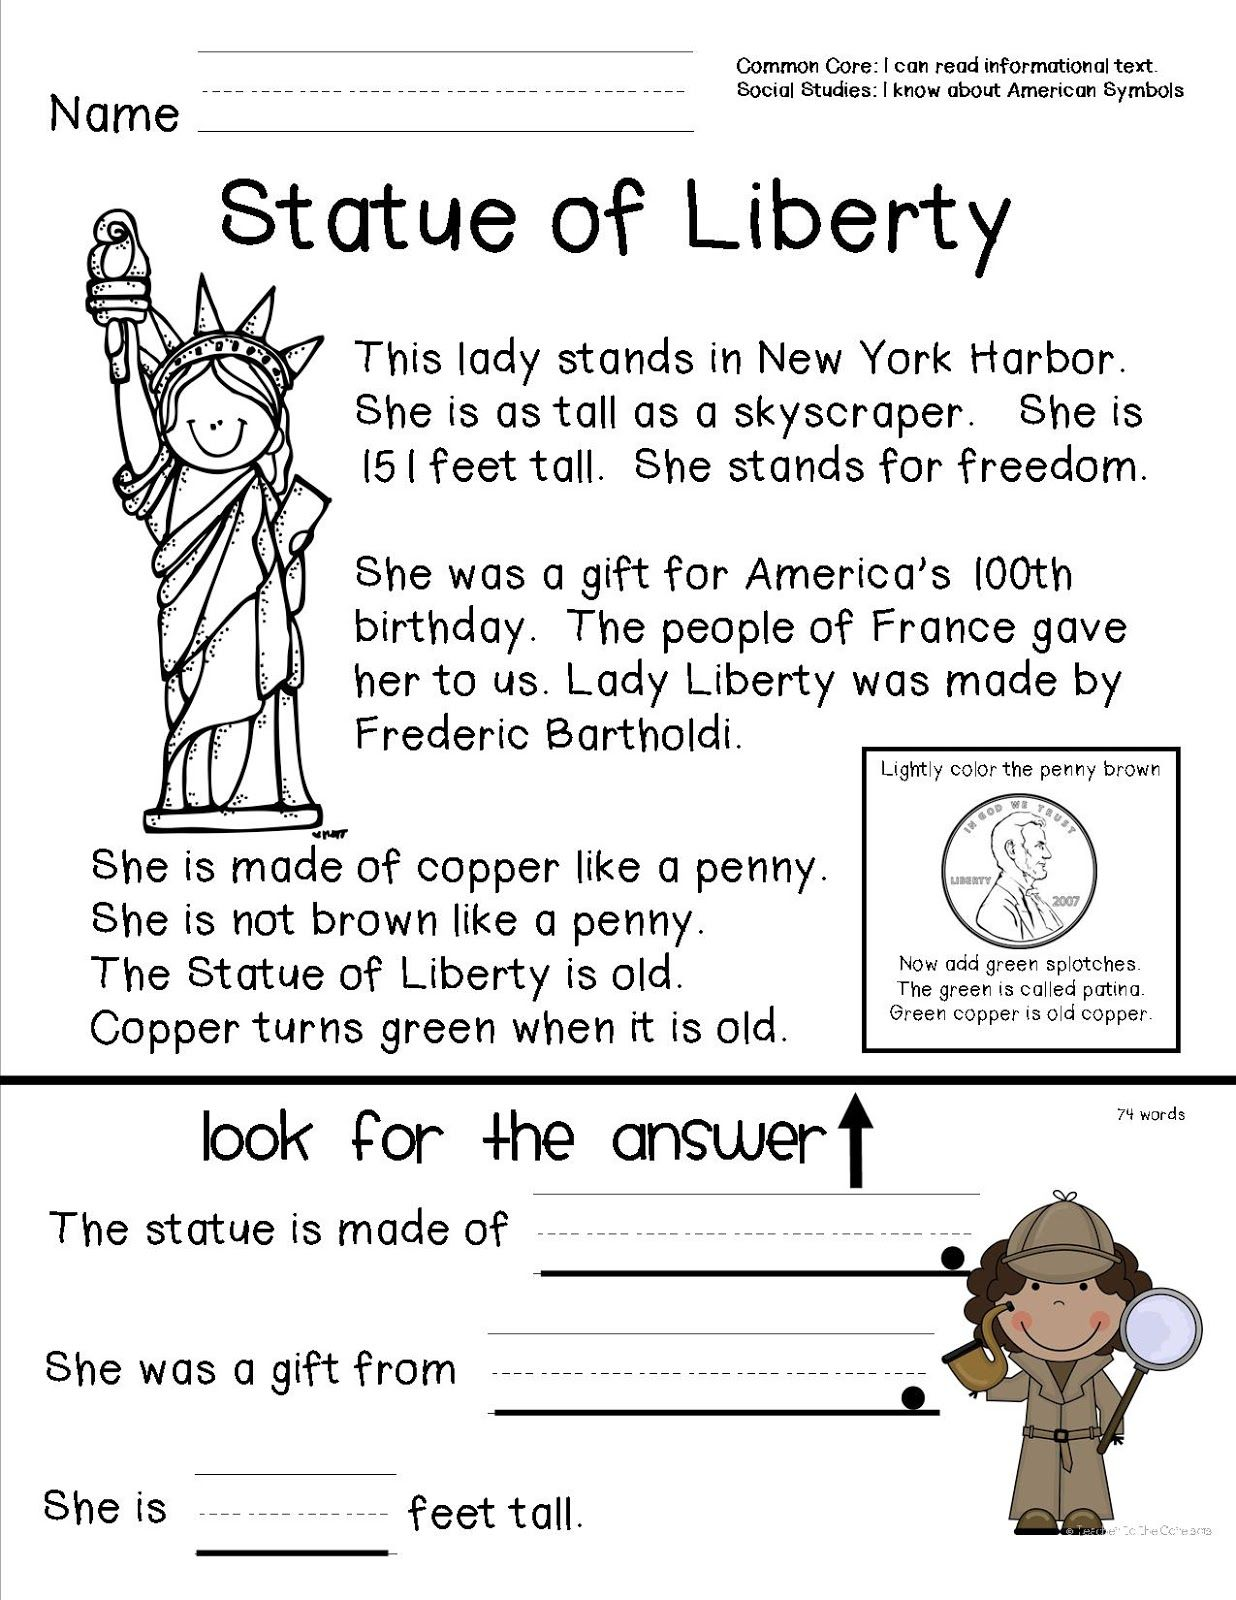 Reading Comprehension Sheet About The Statue Of Liberty For Primary Grades